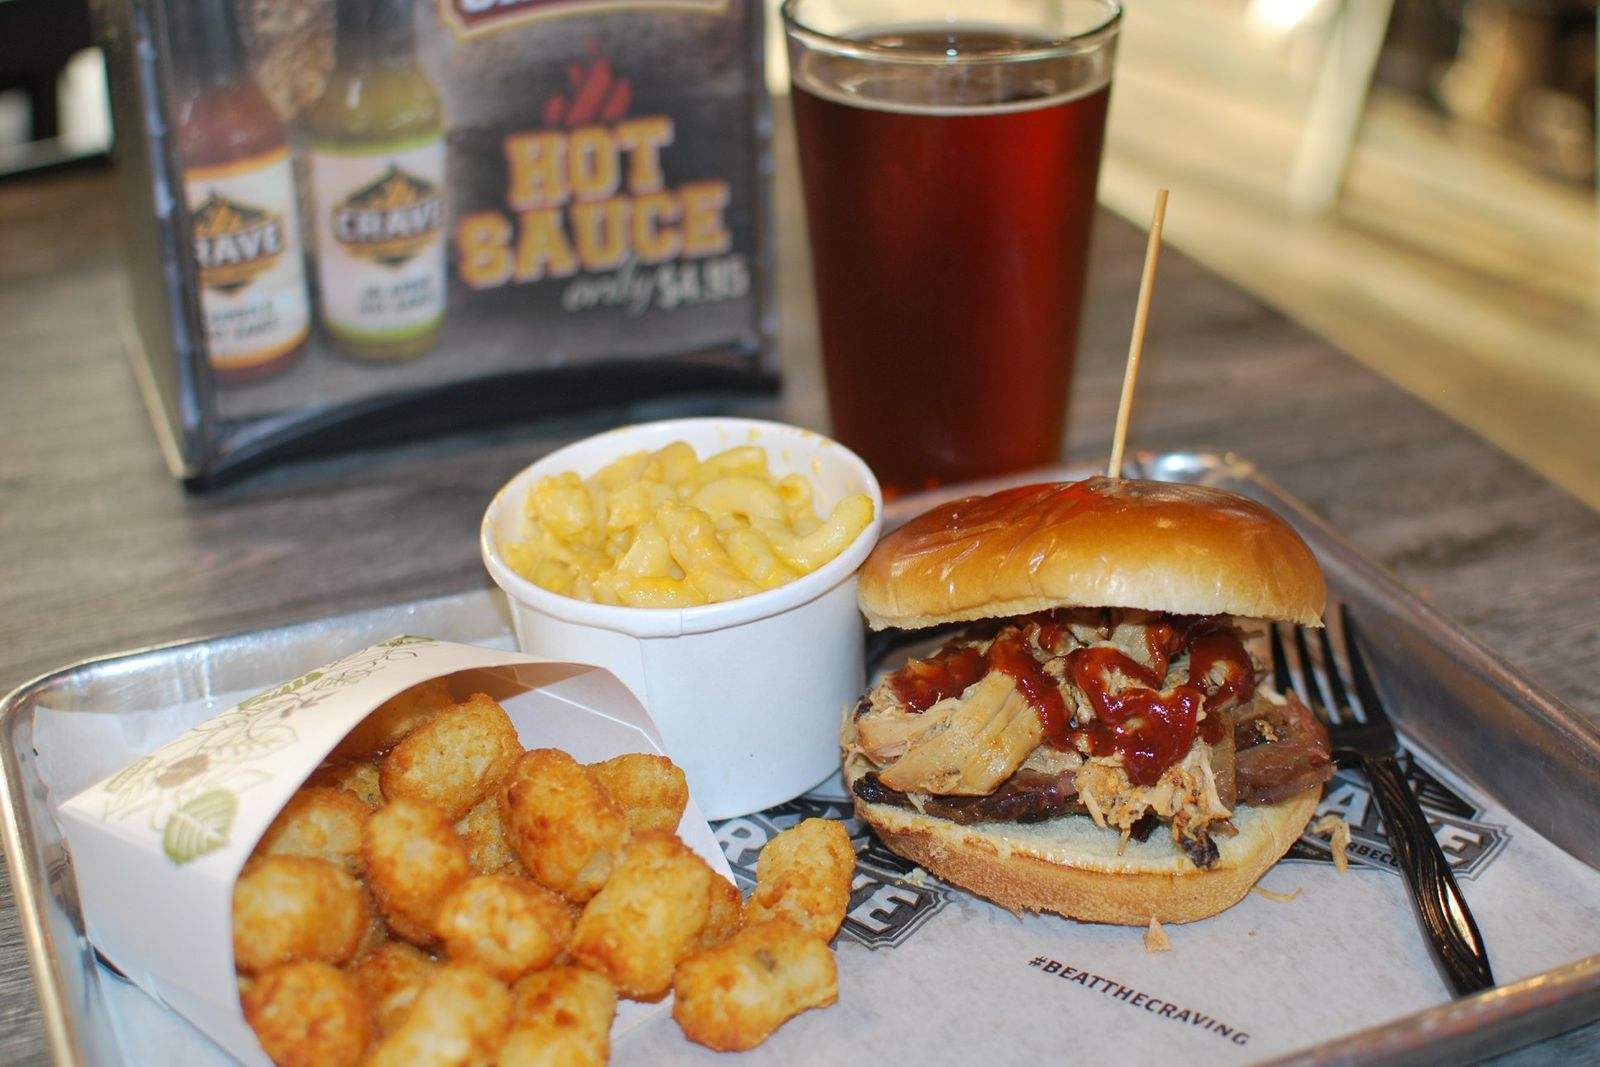 Crave Hot Dogs and BBQ supports Veterans